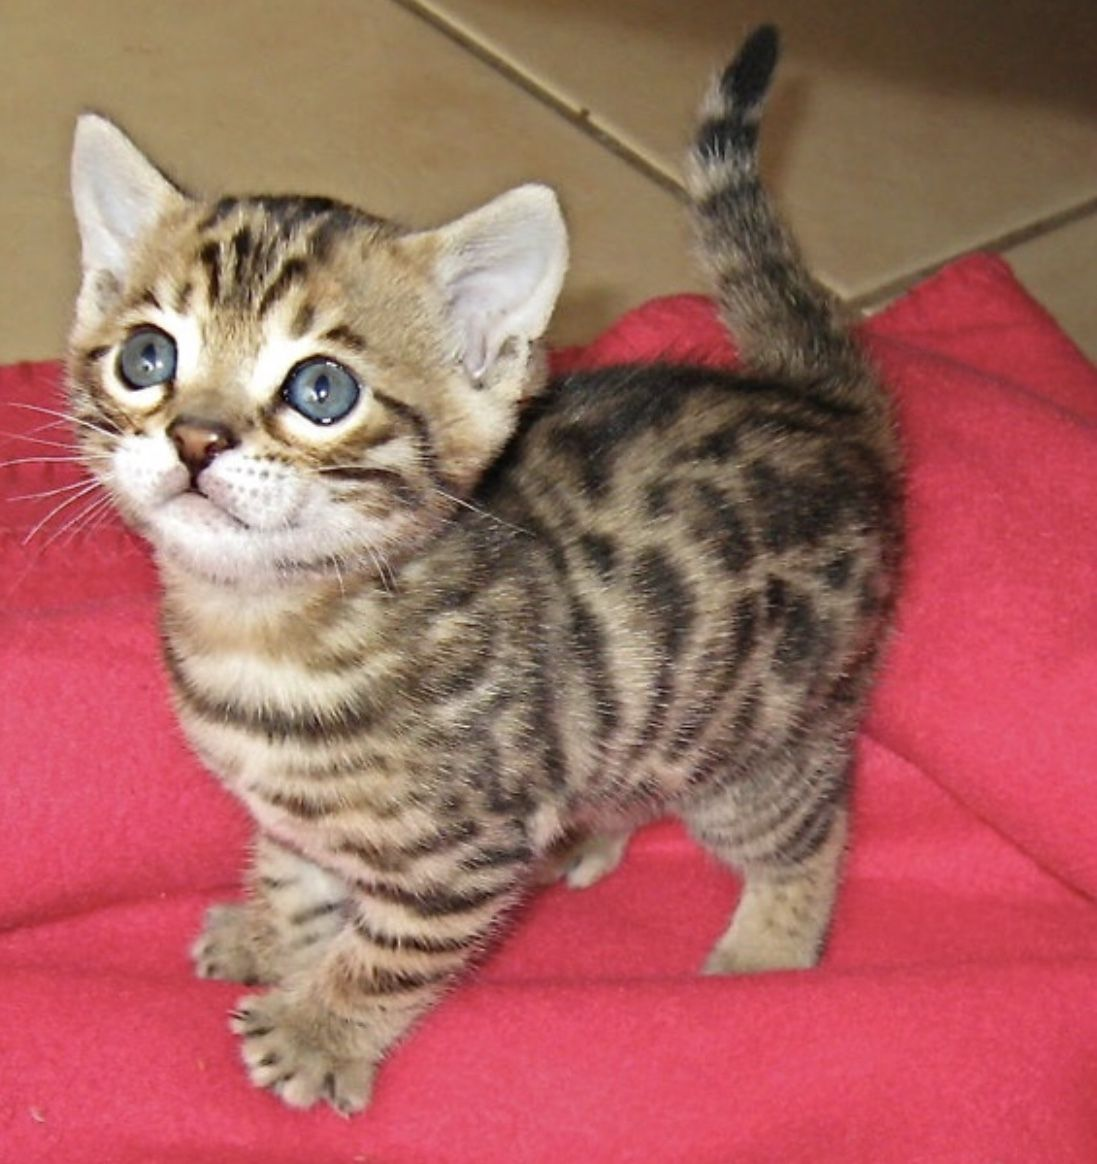 Pin By Kayla Sultry On Pets Bengal Kitten Kittens Cutest Bengal Cat